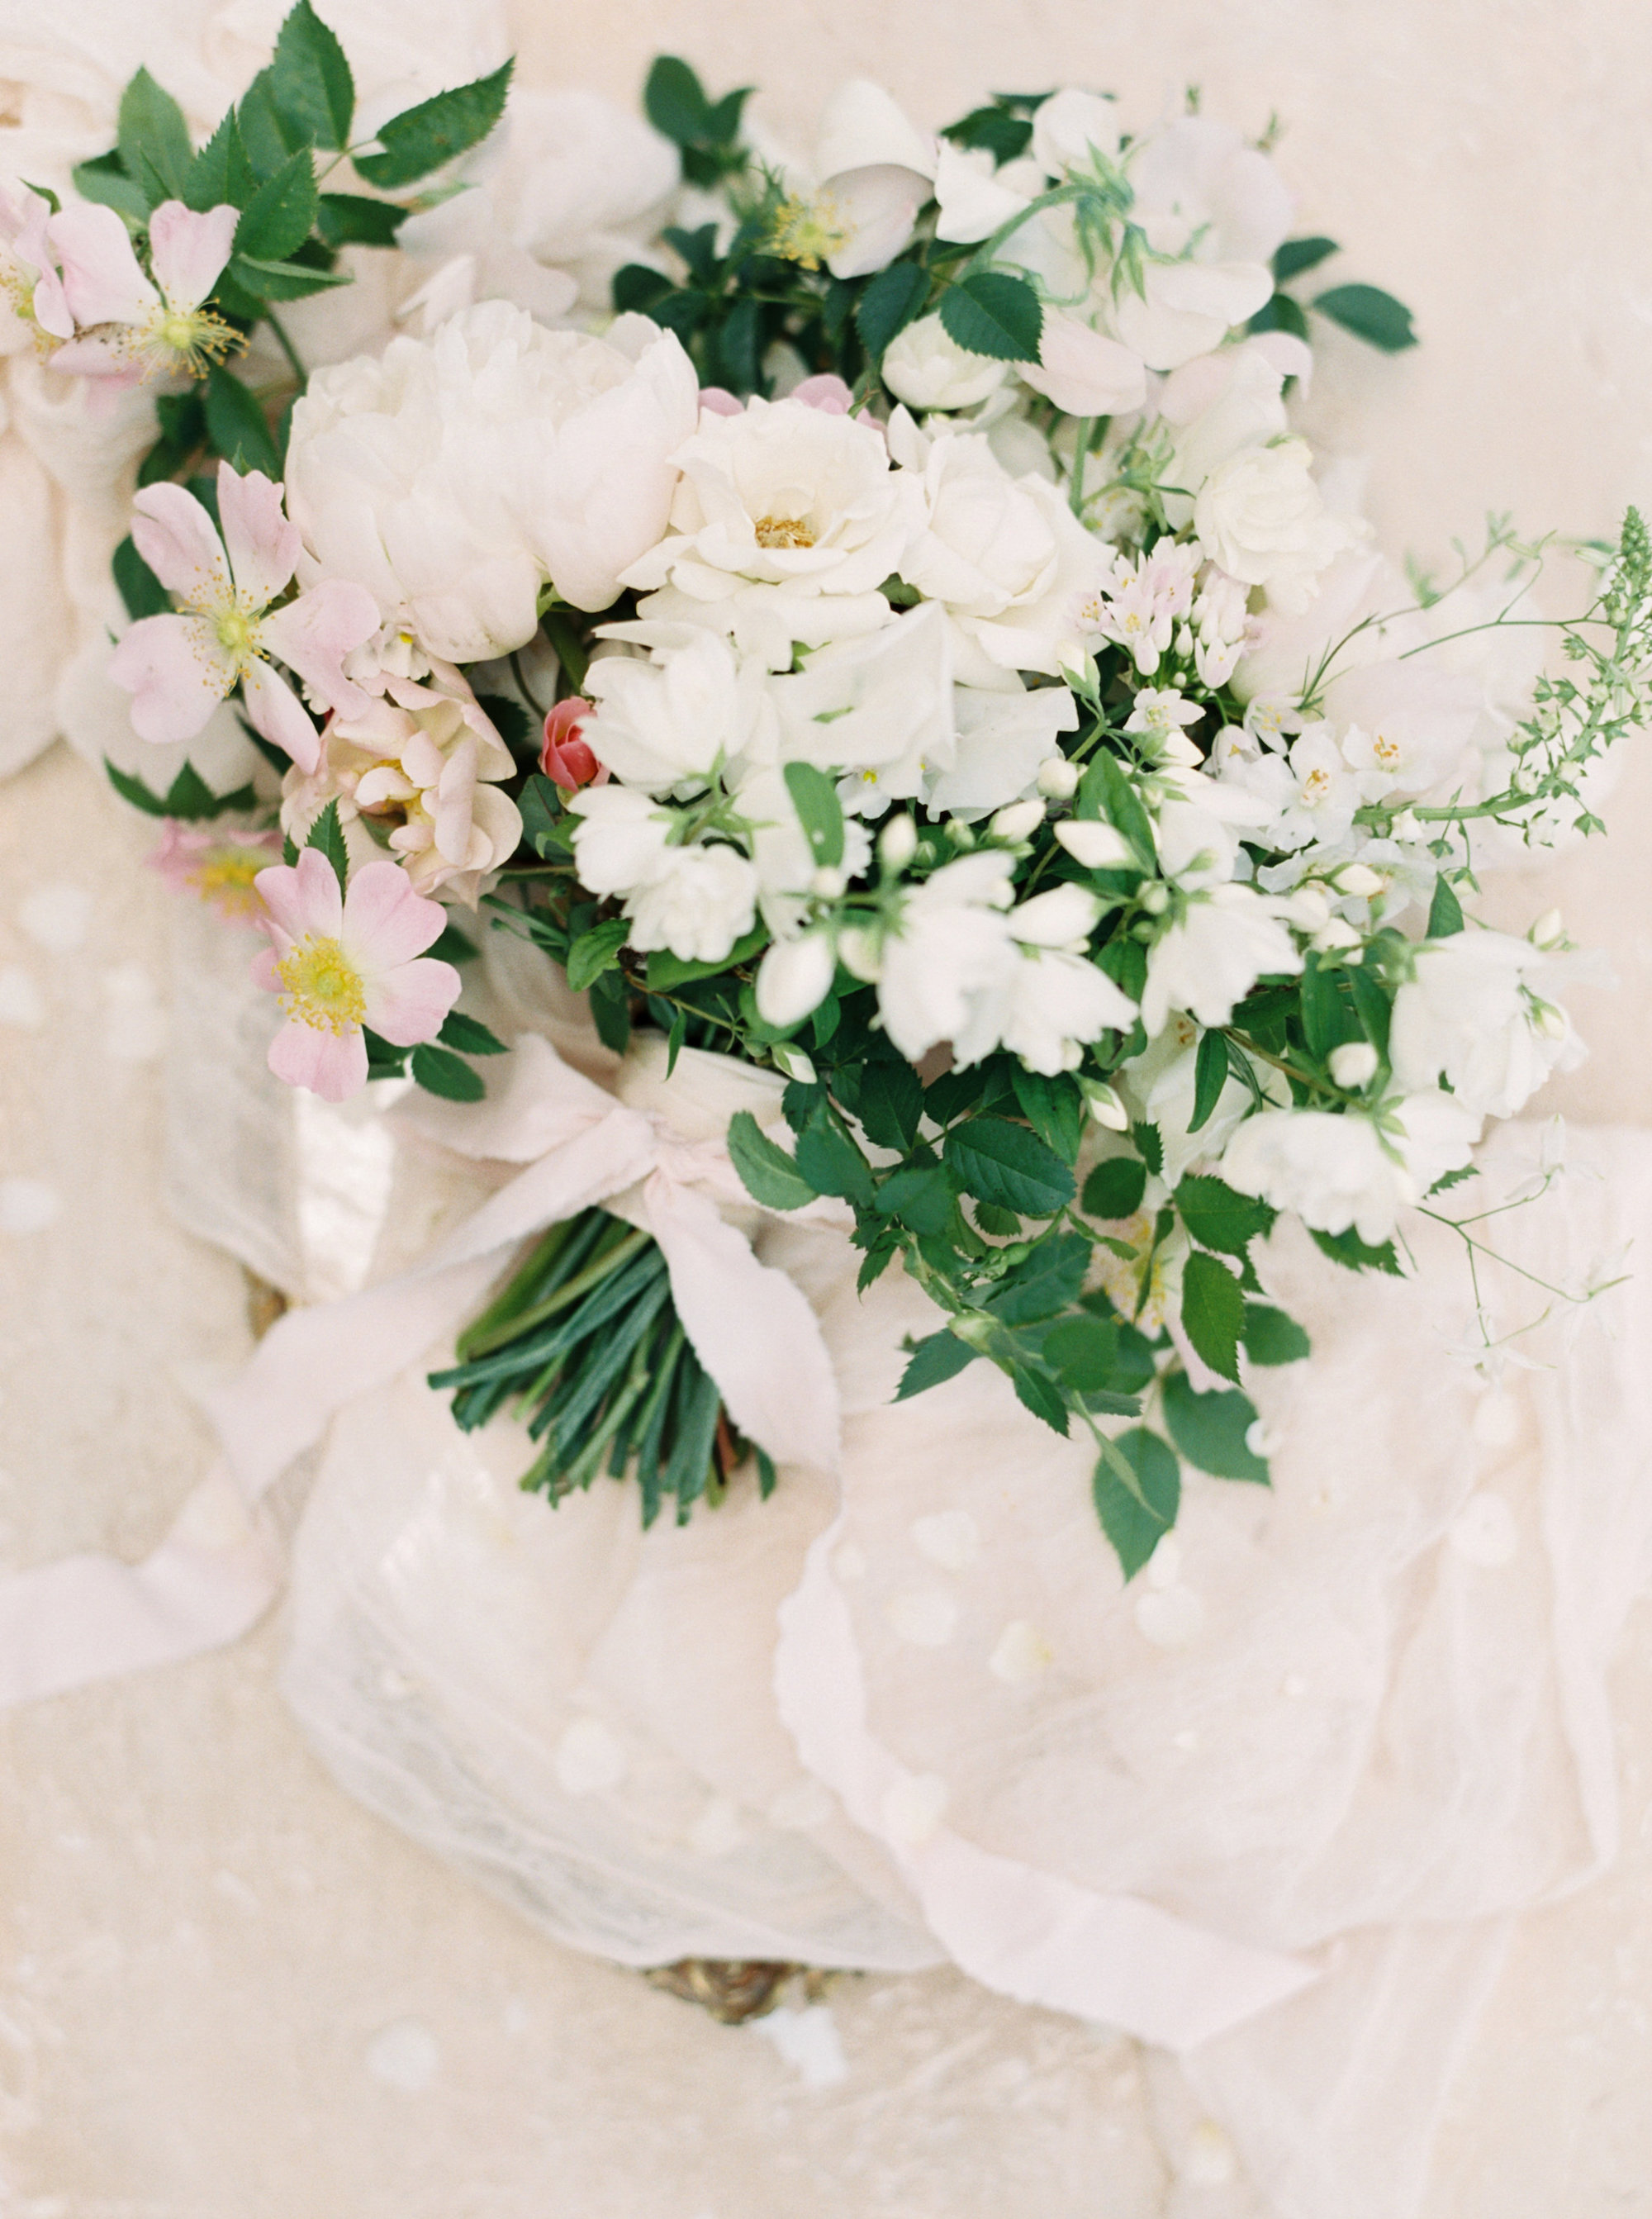 Luxury Wedding Planner UK | Jennifer & Timothy's English Country Manor Wedding | Soft Pink Pale Blue White and Silver Toned Green Neutral Tones American Bride North Cadbury Court | Nicole Colwell Photography 0538.jpg